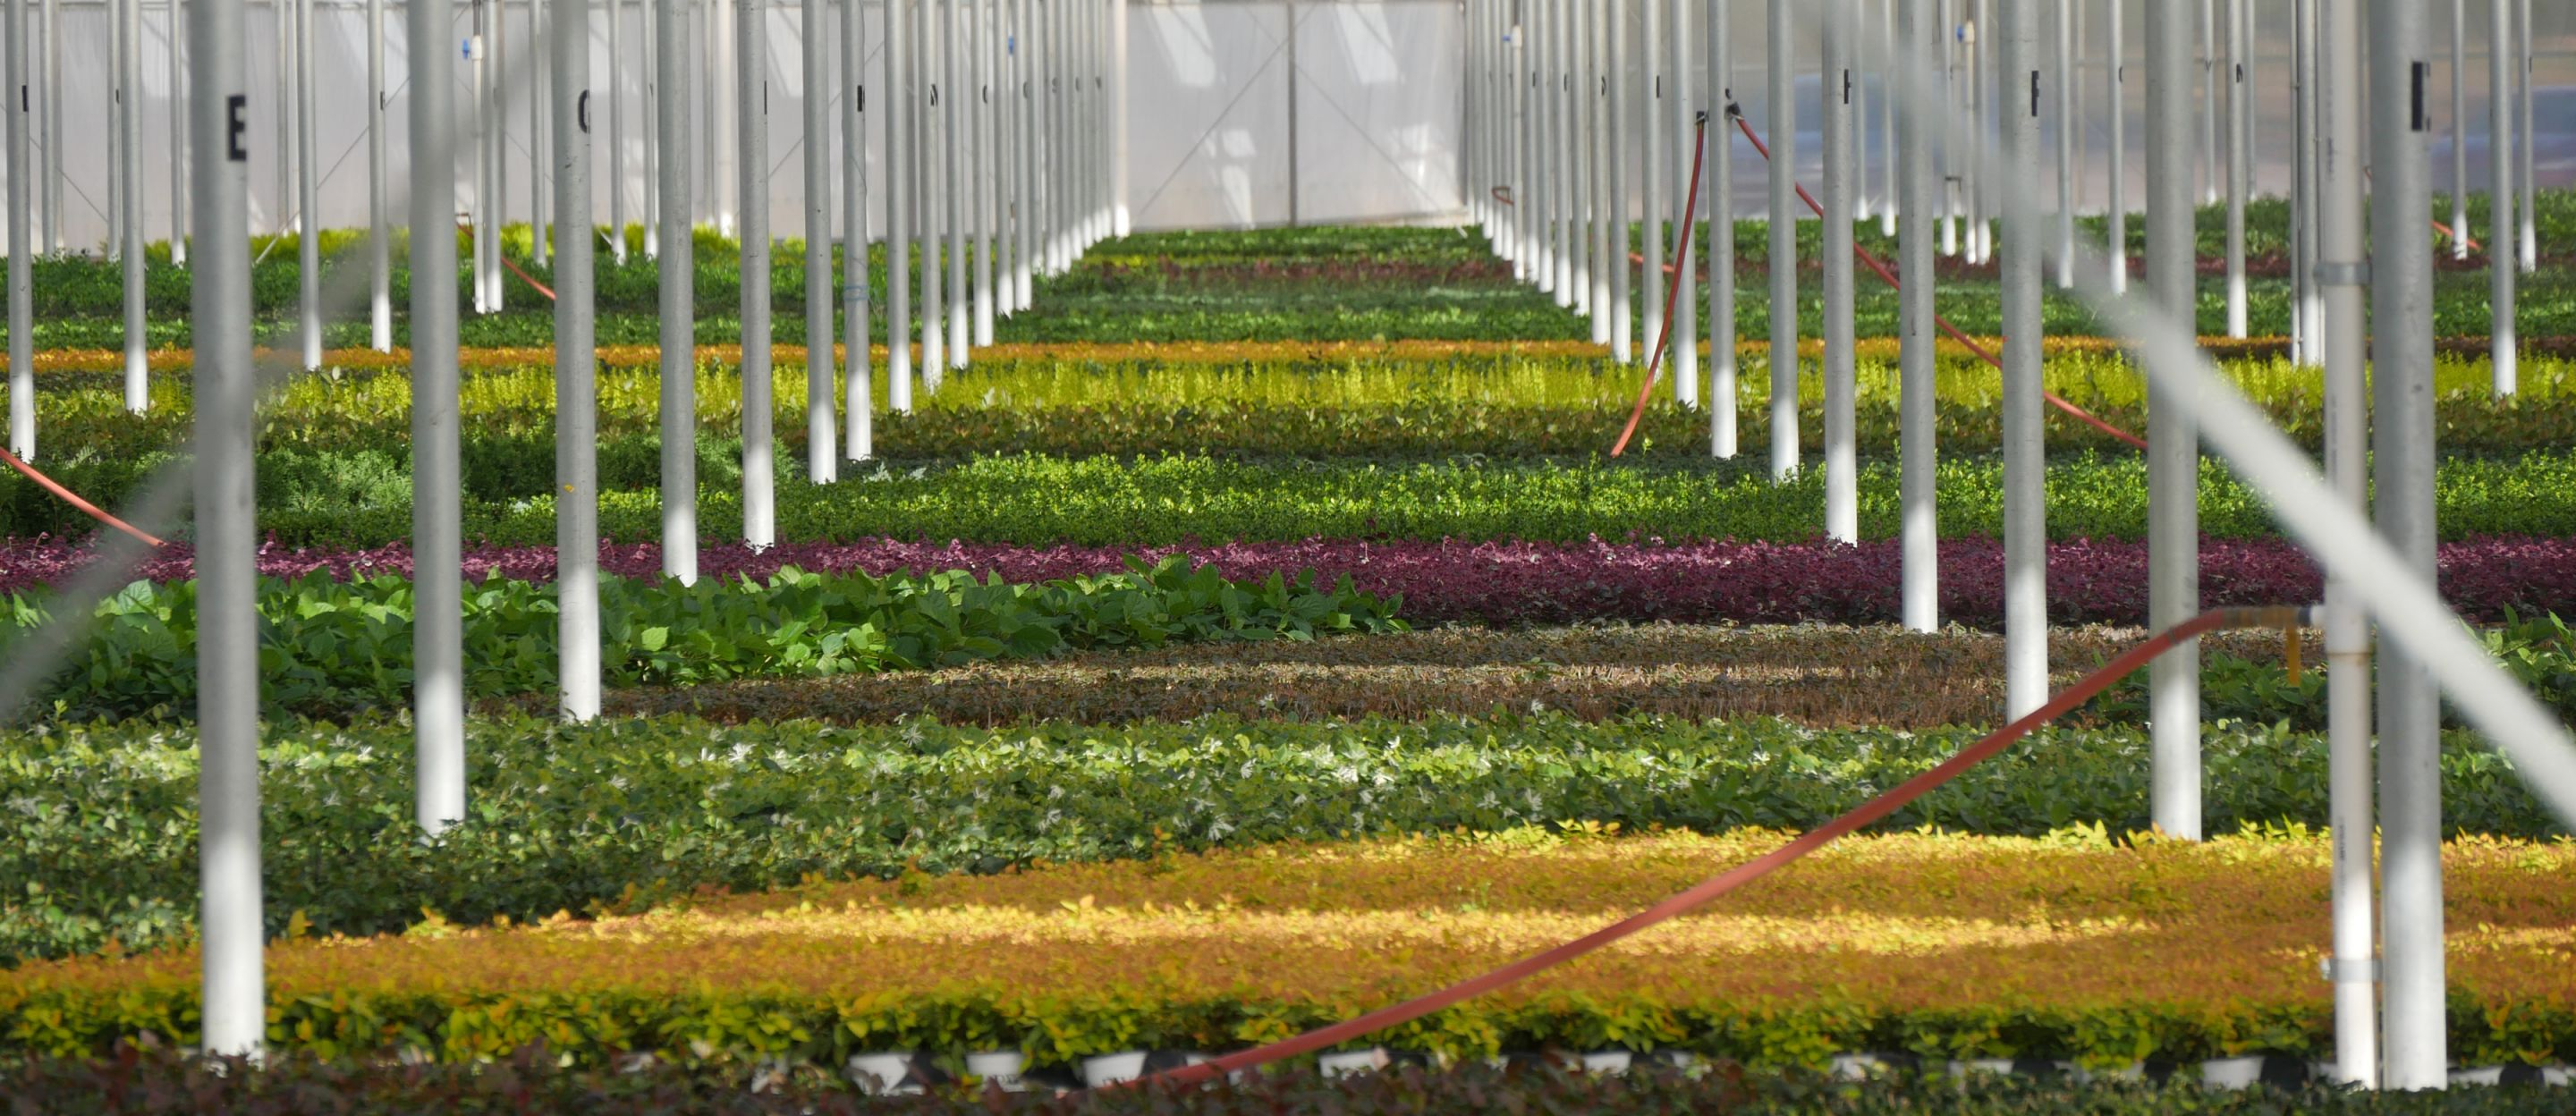 Colorful Shrub Liners Filling Larger Greenhouse